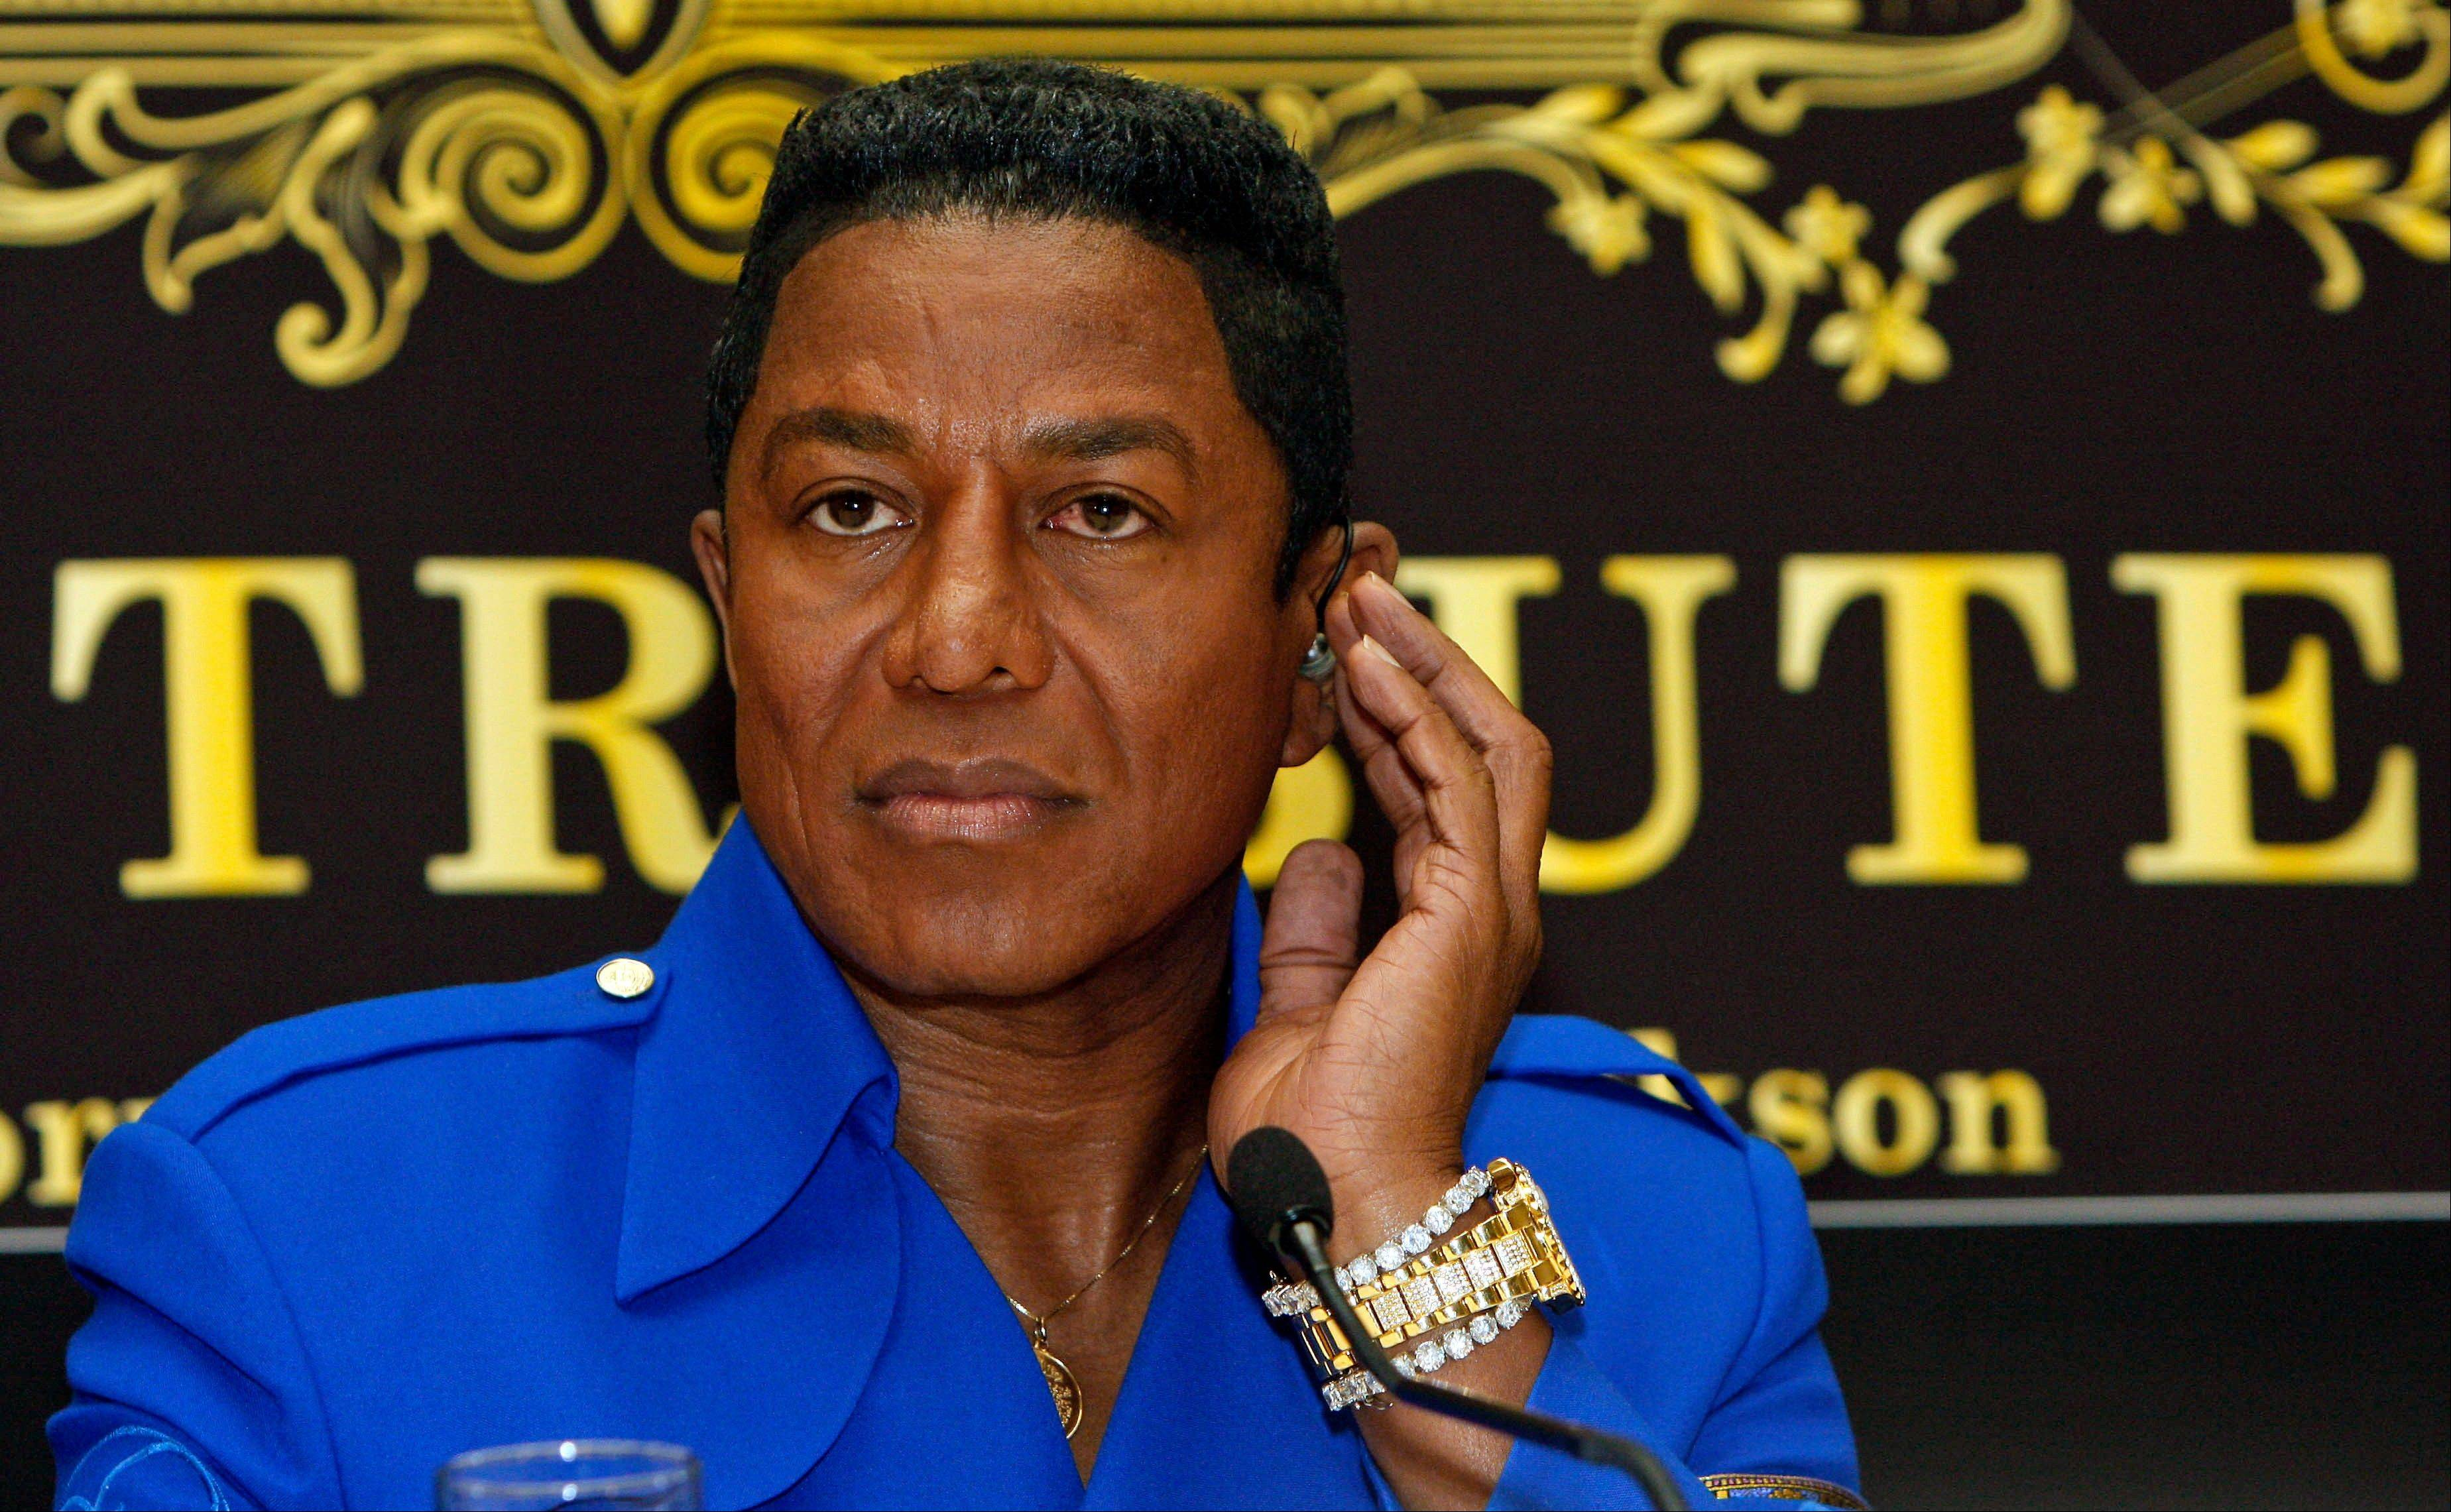 Jermaine Jackson said that he regretted the recent public turmoil that has embroiled his family and called for them to work out their issues in private. He also said he no longer supported a letter calling on the estate's executors to step down.